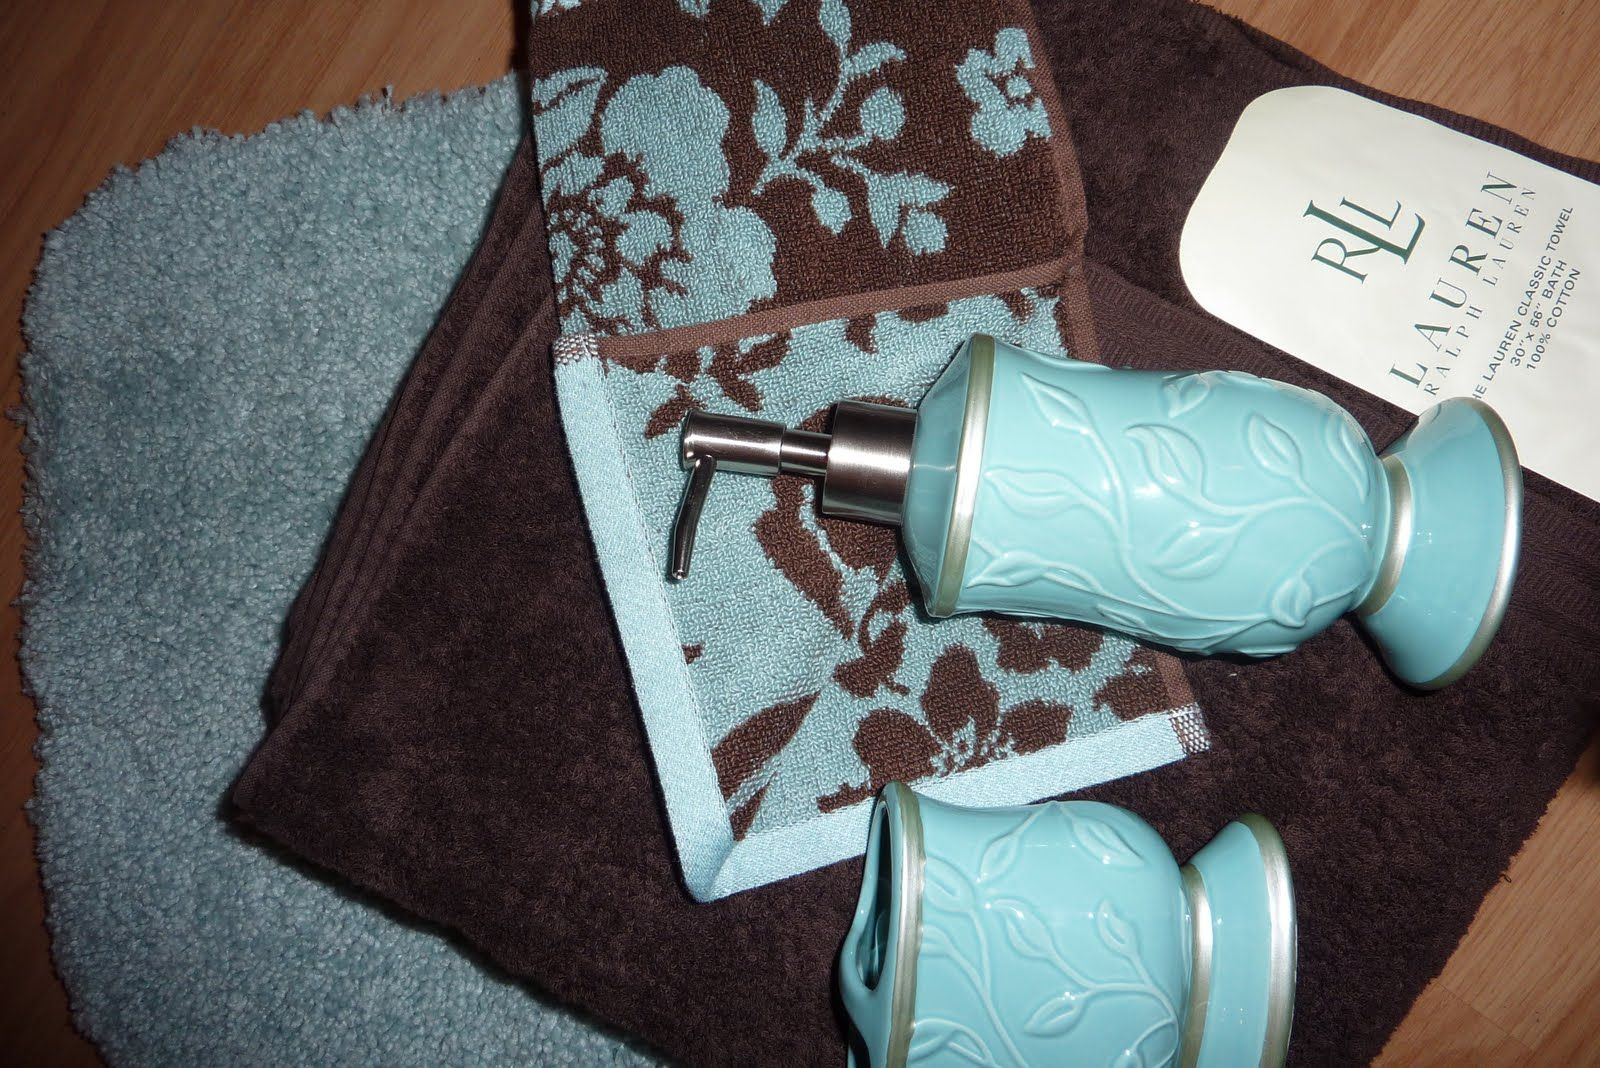 Dark Brown And Teal Bathroom Towels Patterned Towel Accessories Better Homes Large Mini